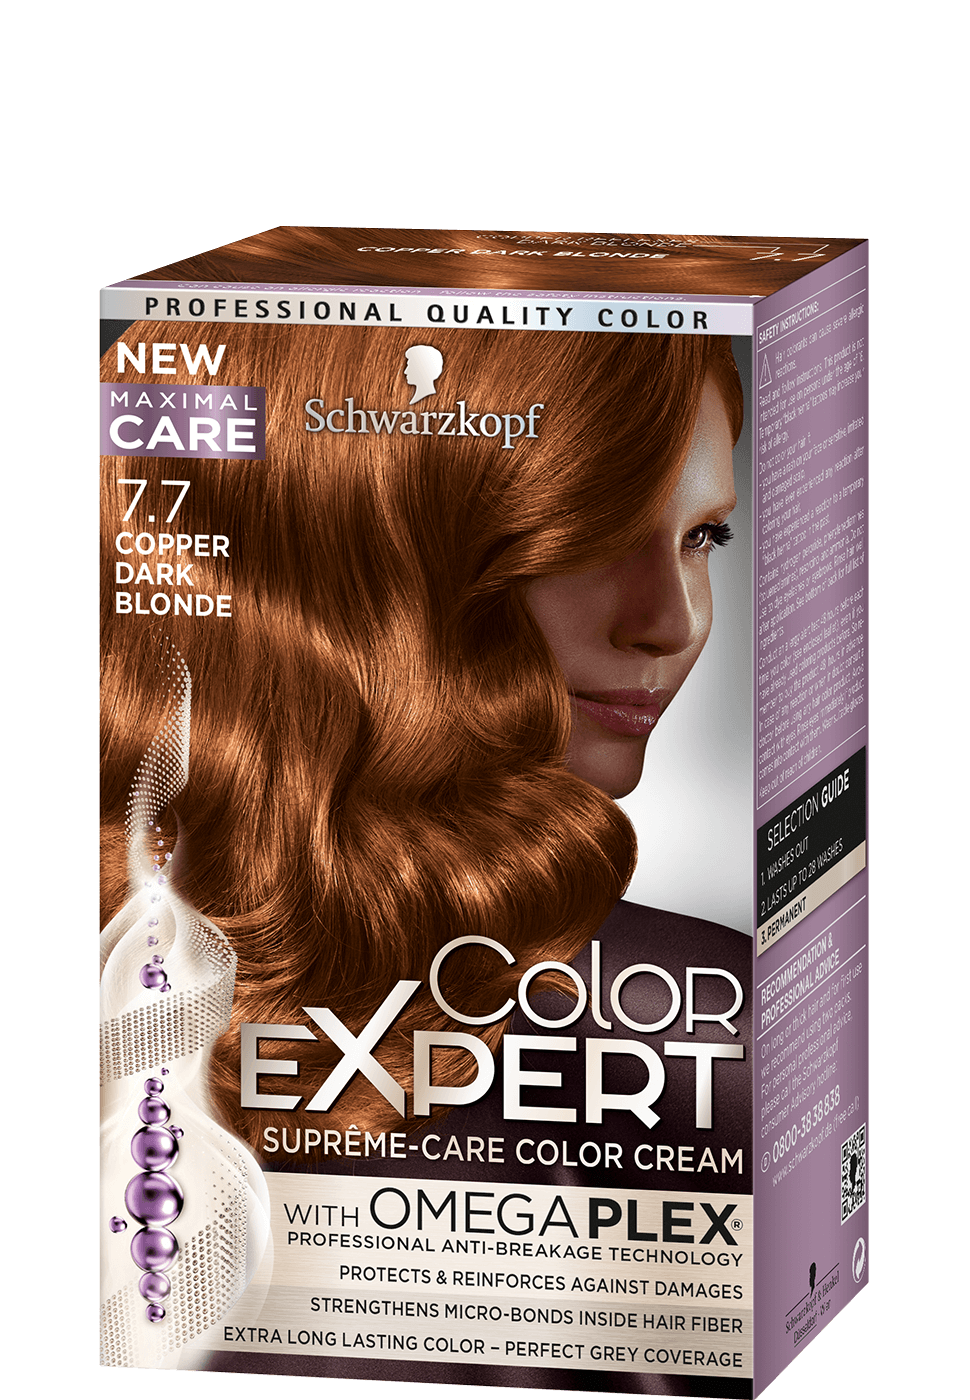 Color Expert Color Creme 7-7 Copper Dark Blonde